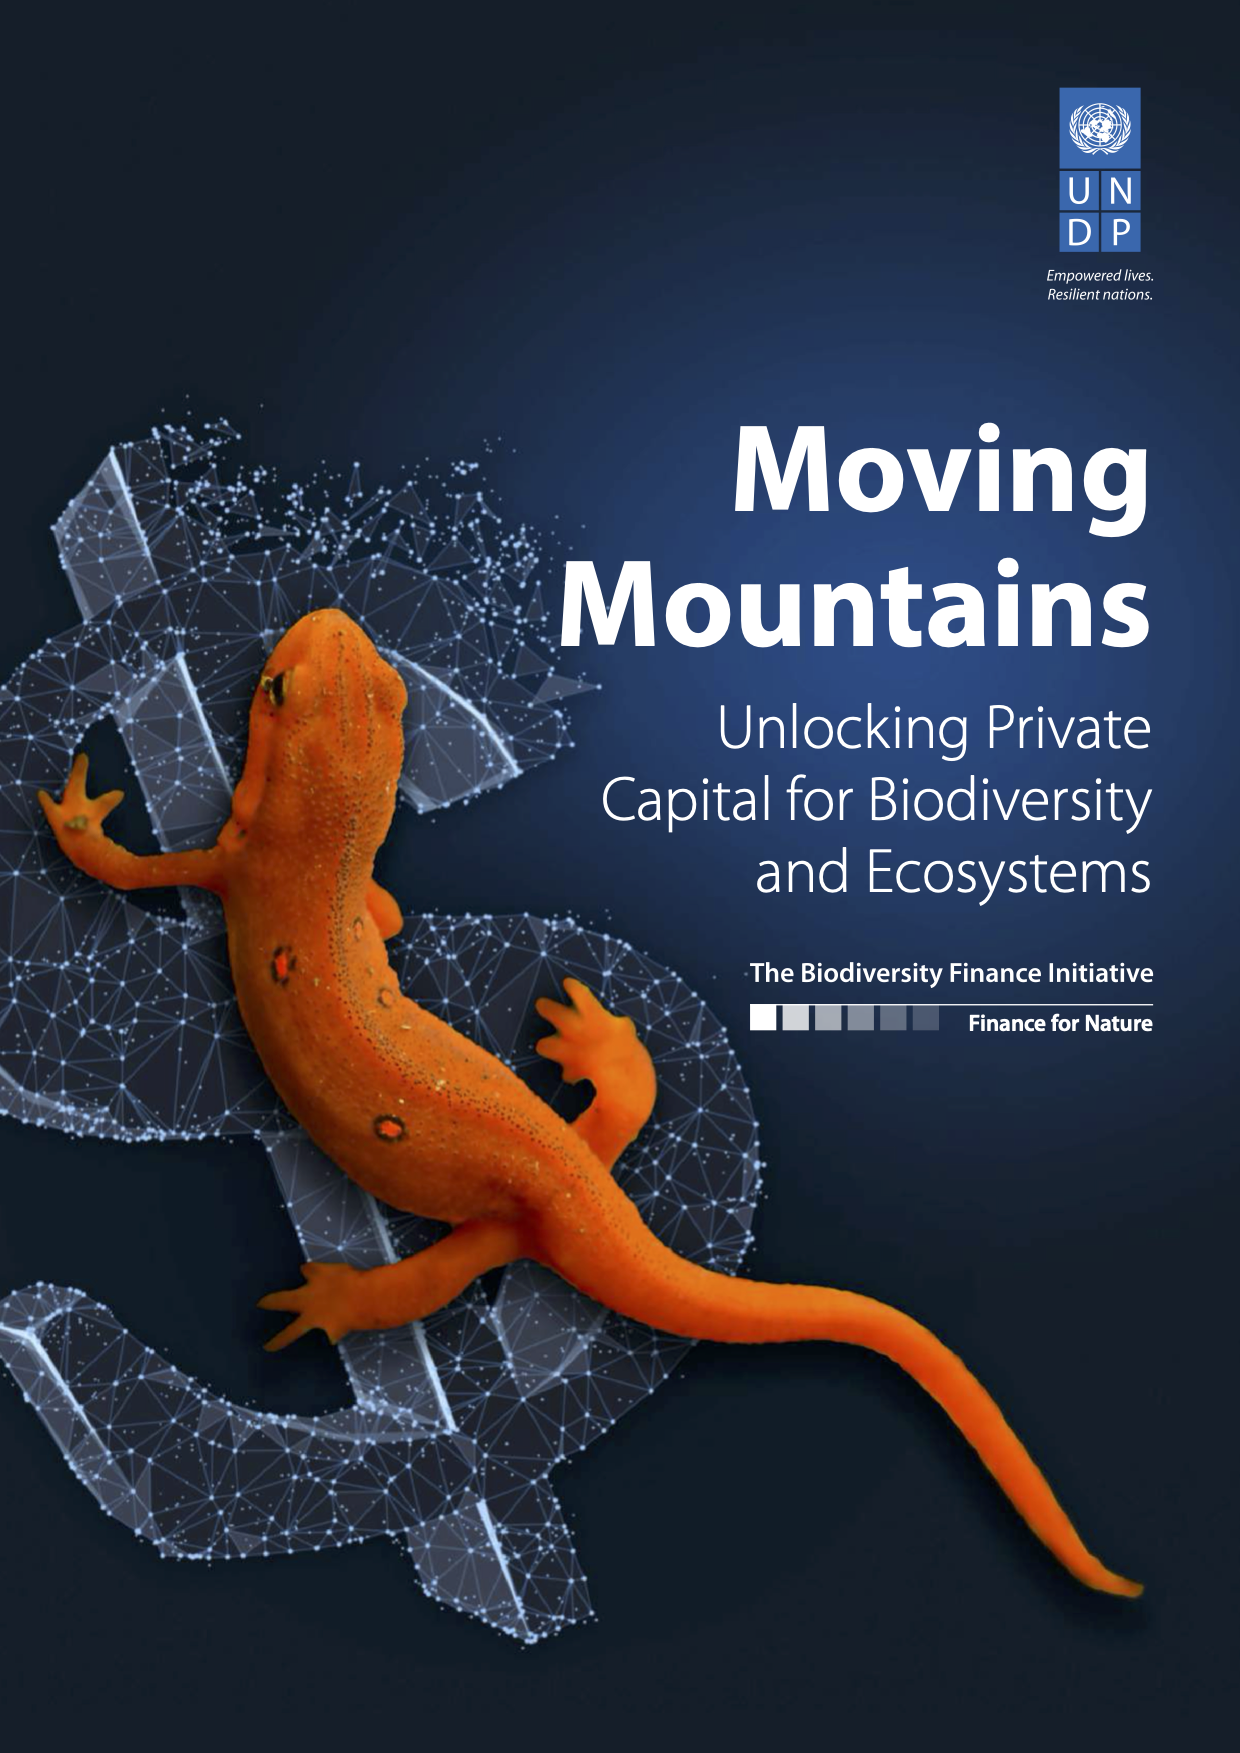 Moving Mountains - Unlocking Private Capital for Biodiversity and Ecosystems